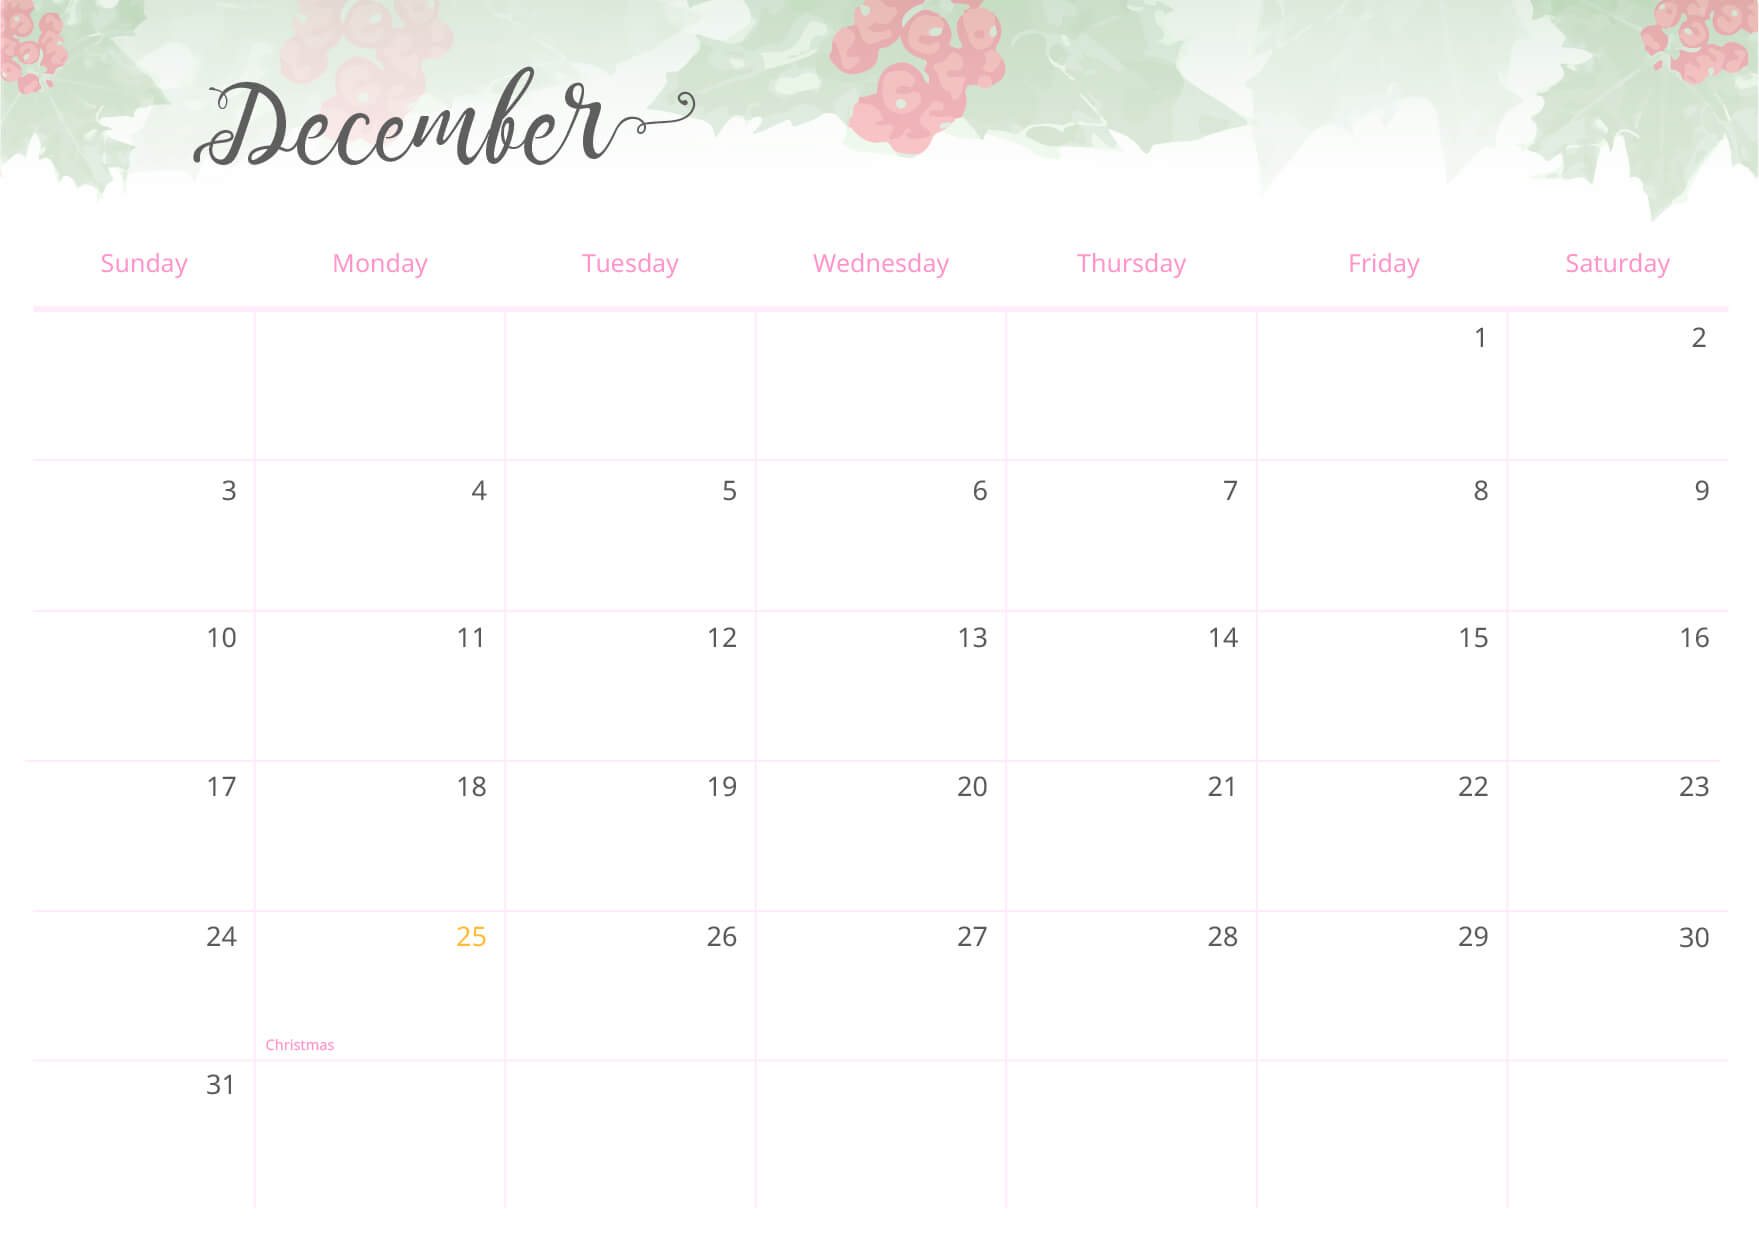 End the year by taking a look at all the monthly calendars of the year and take a few minutes to remember all the amazing events you enjoyed!